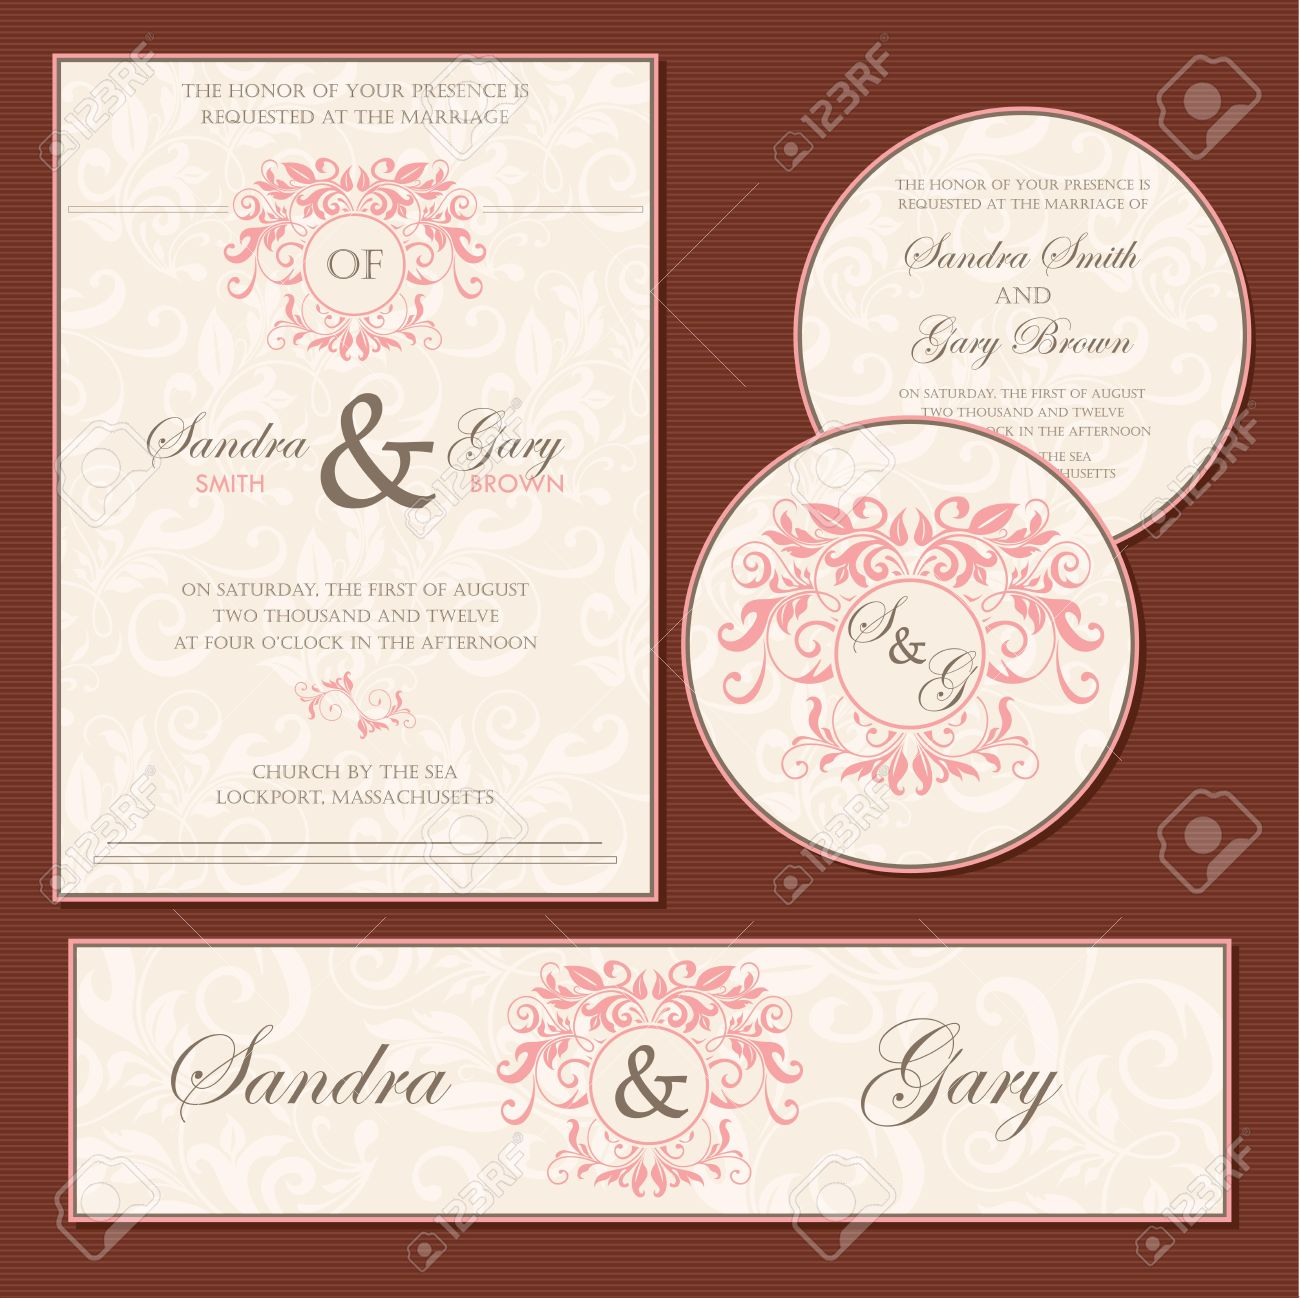 Ideas Thank You Note For Wedding Invitation set of wedding invitation cards thank you card rsvp save the